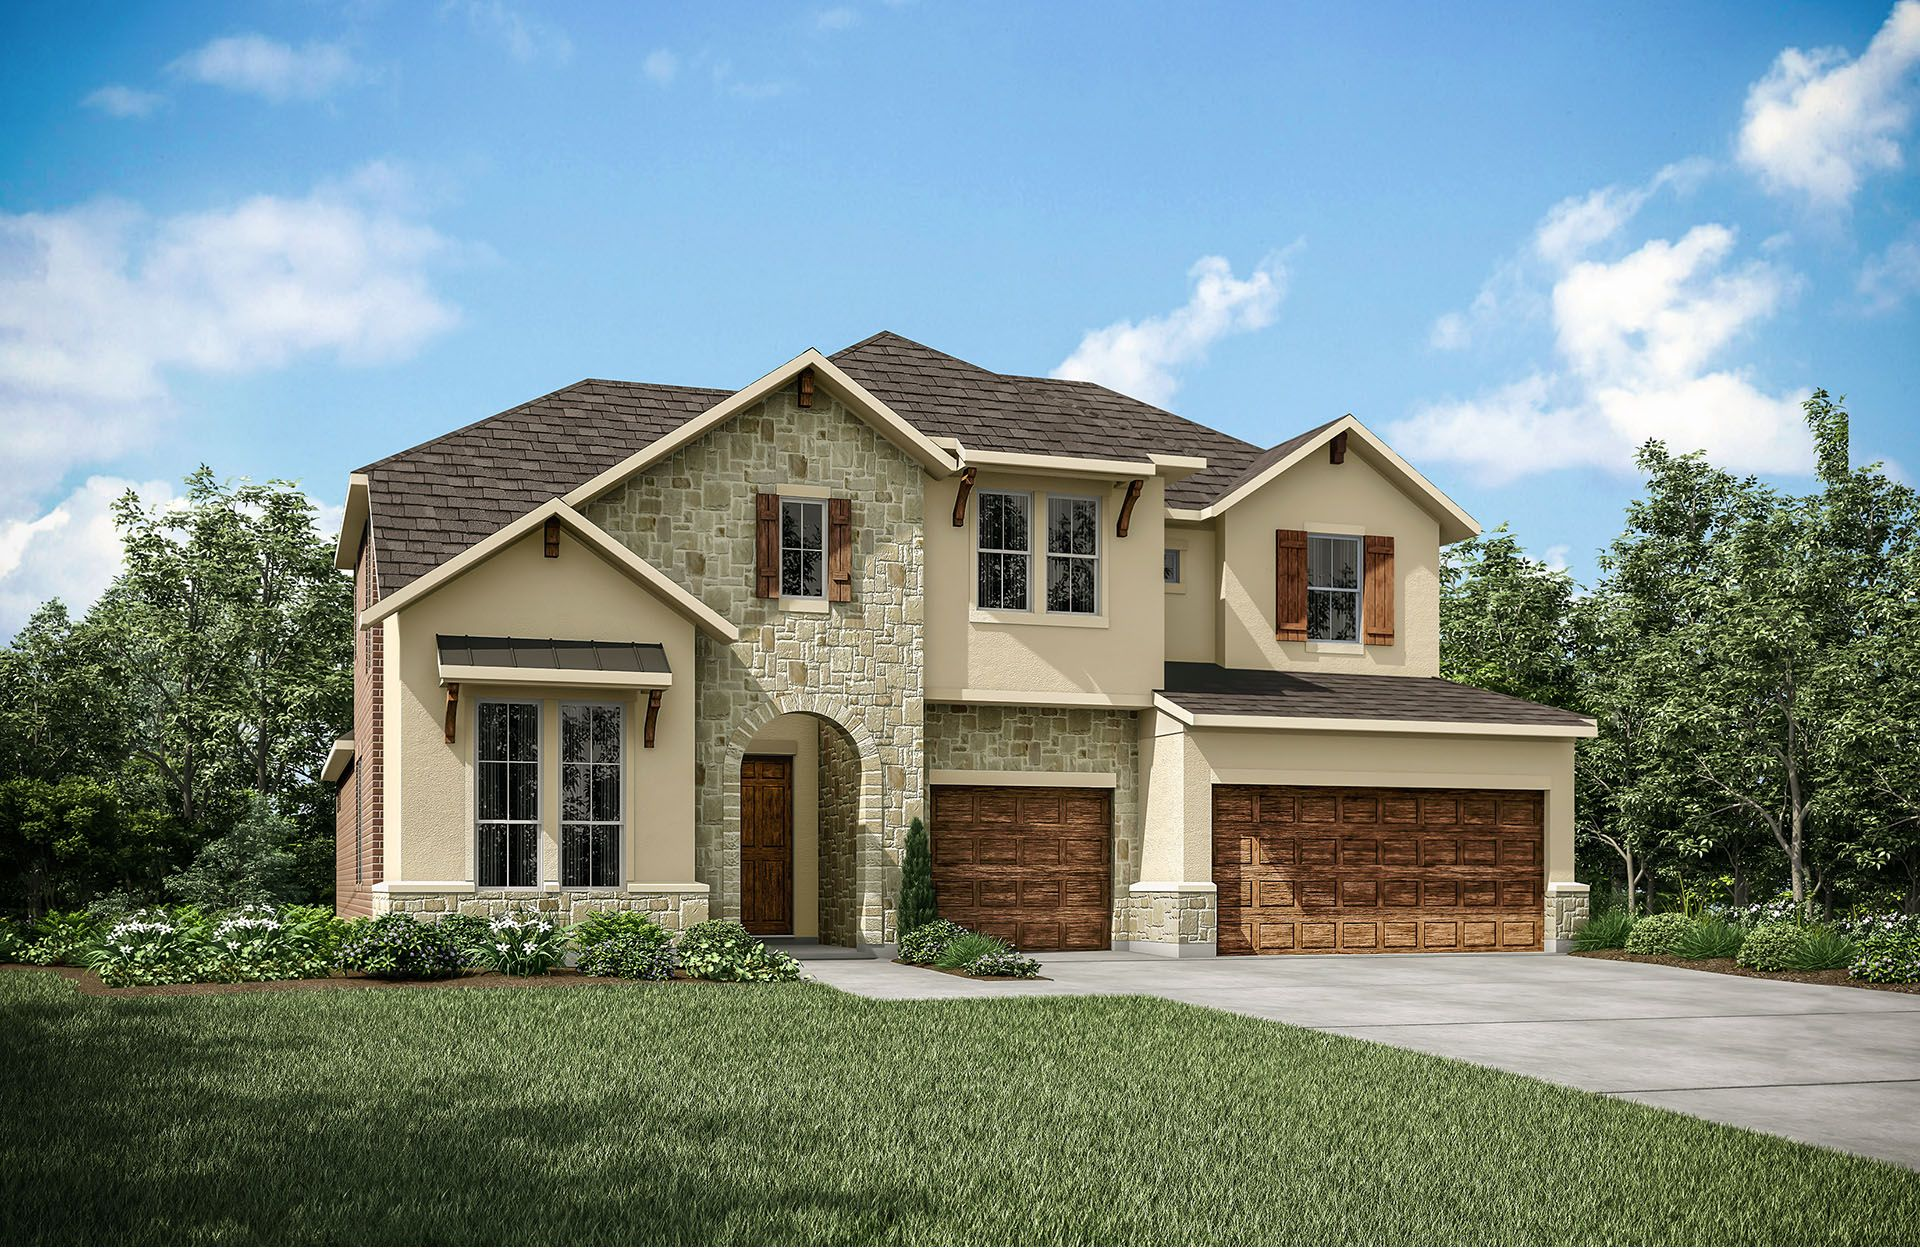 Single Family for Active at Sumlin 314 Parke Wind Way Cedar Park, Texas 78613 United States